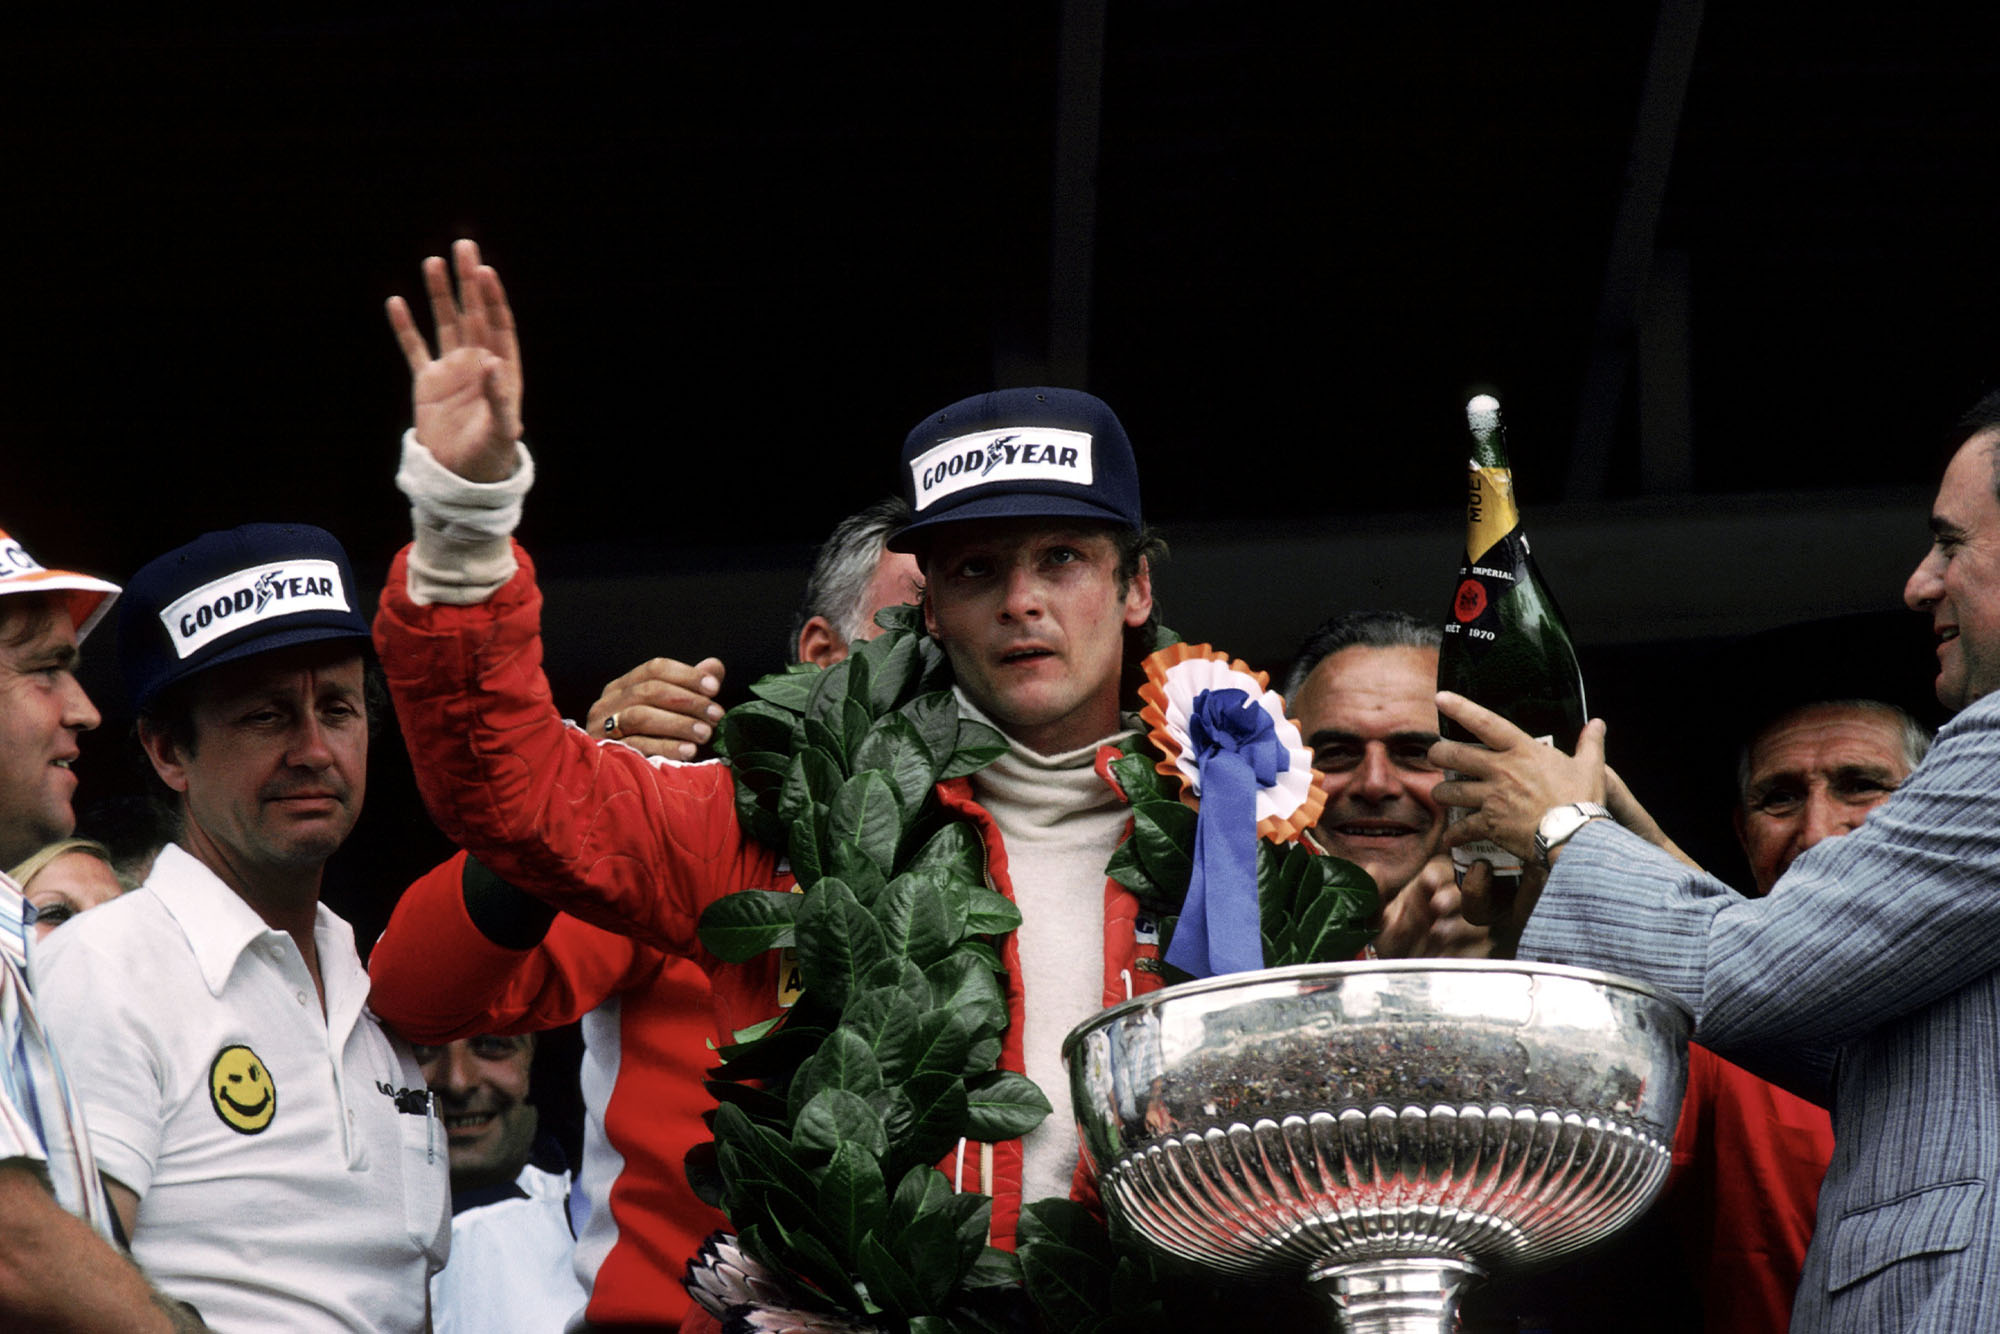 Niki Lauda (Ferrari) waves to the crowd after winning the 1977 South African Grand Prix.